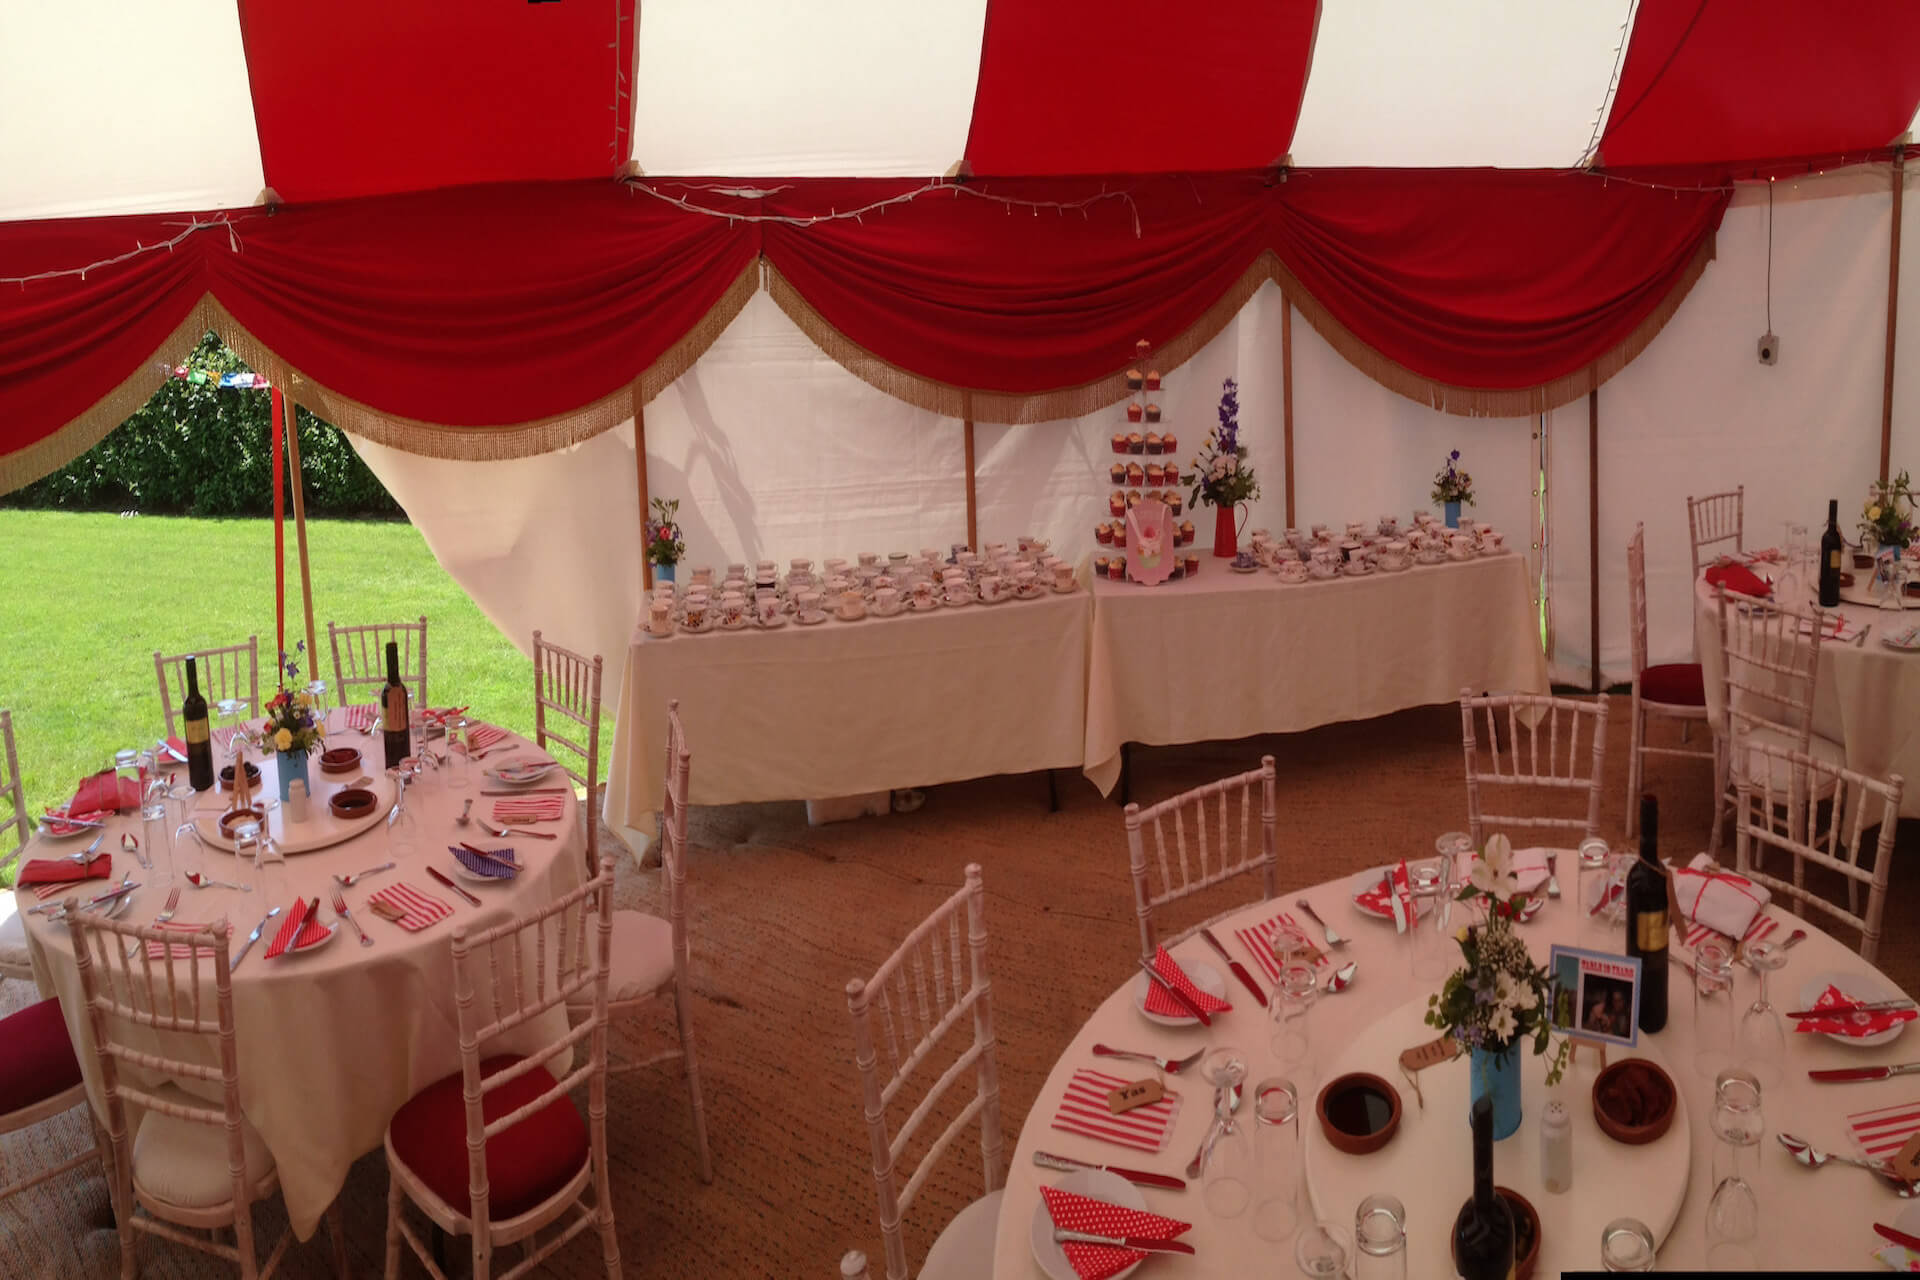 Colourful red & white wedding reception marquees